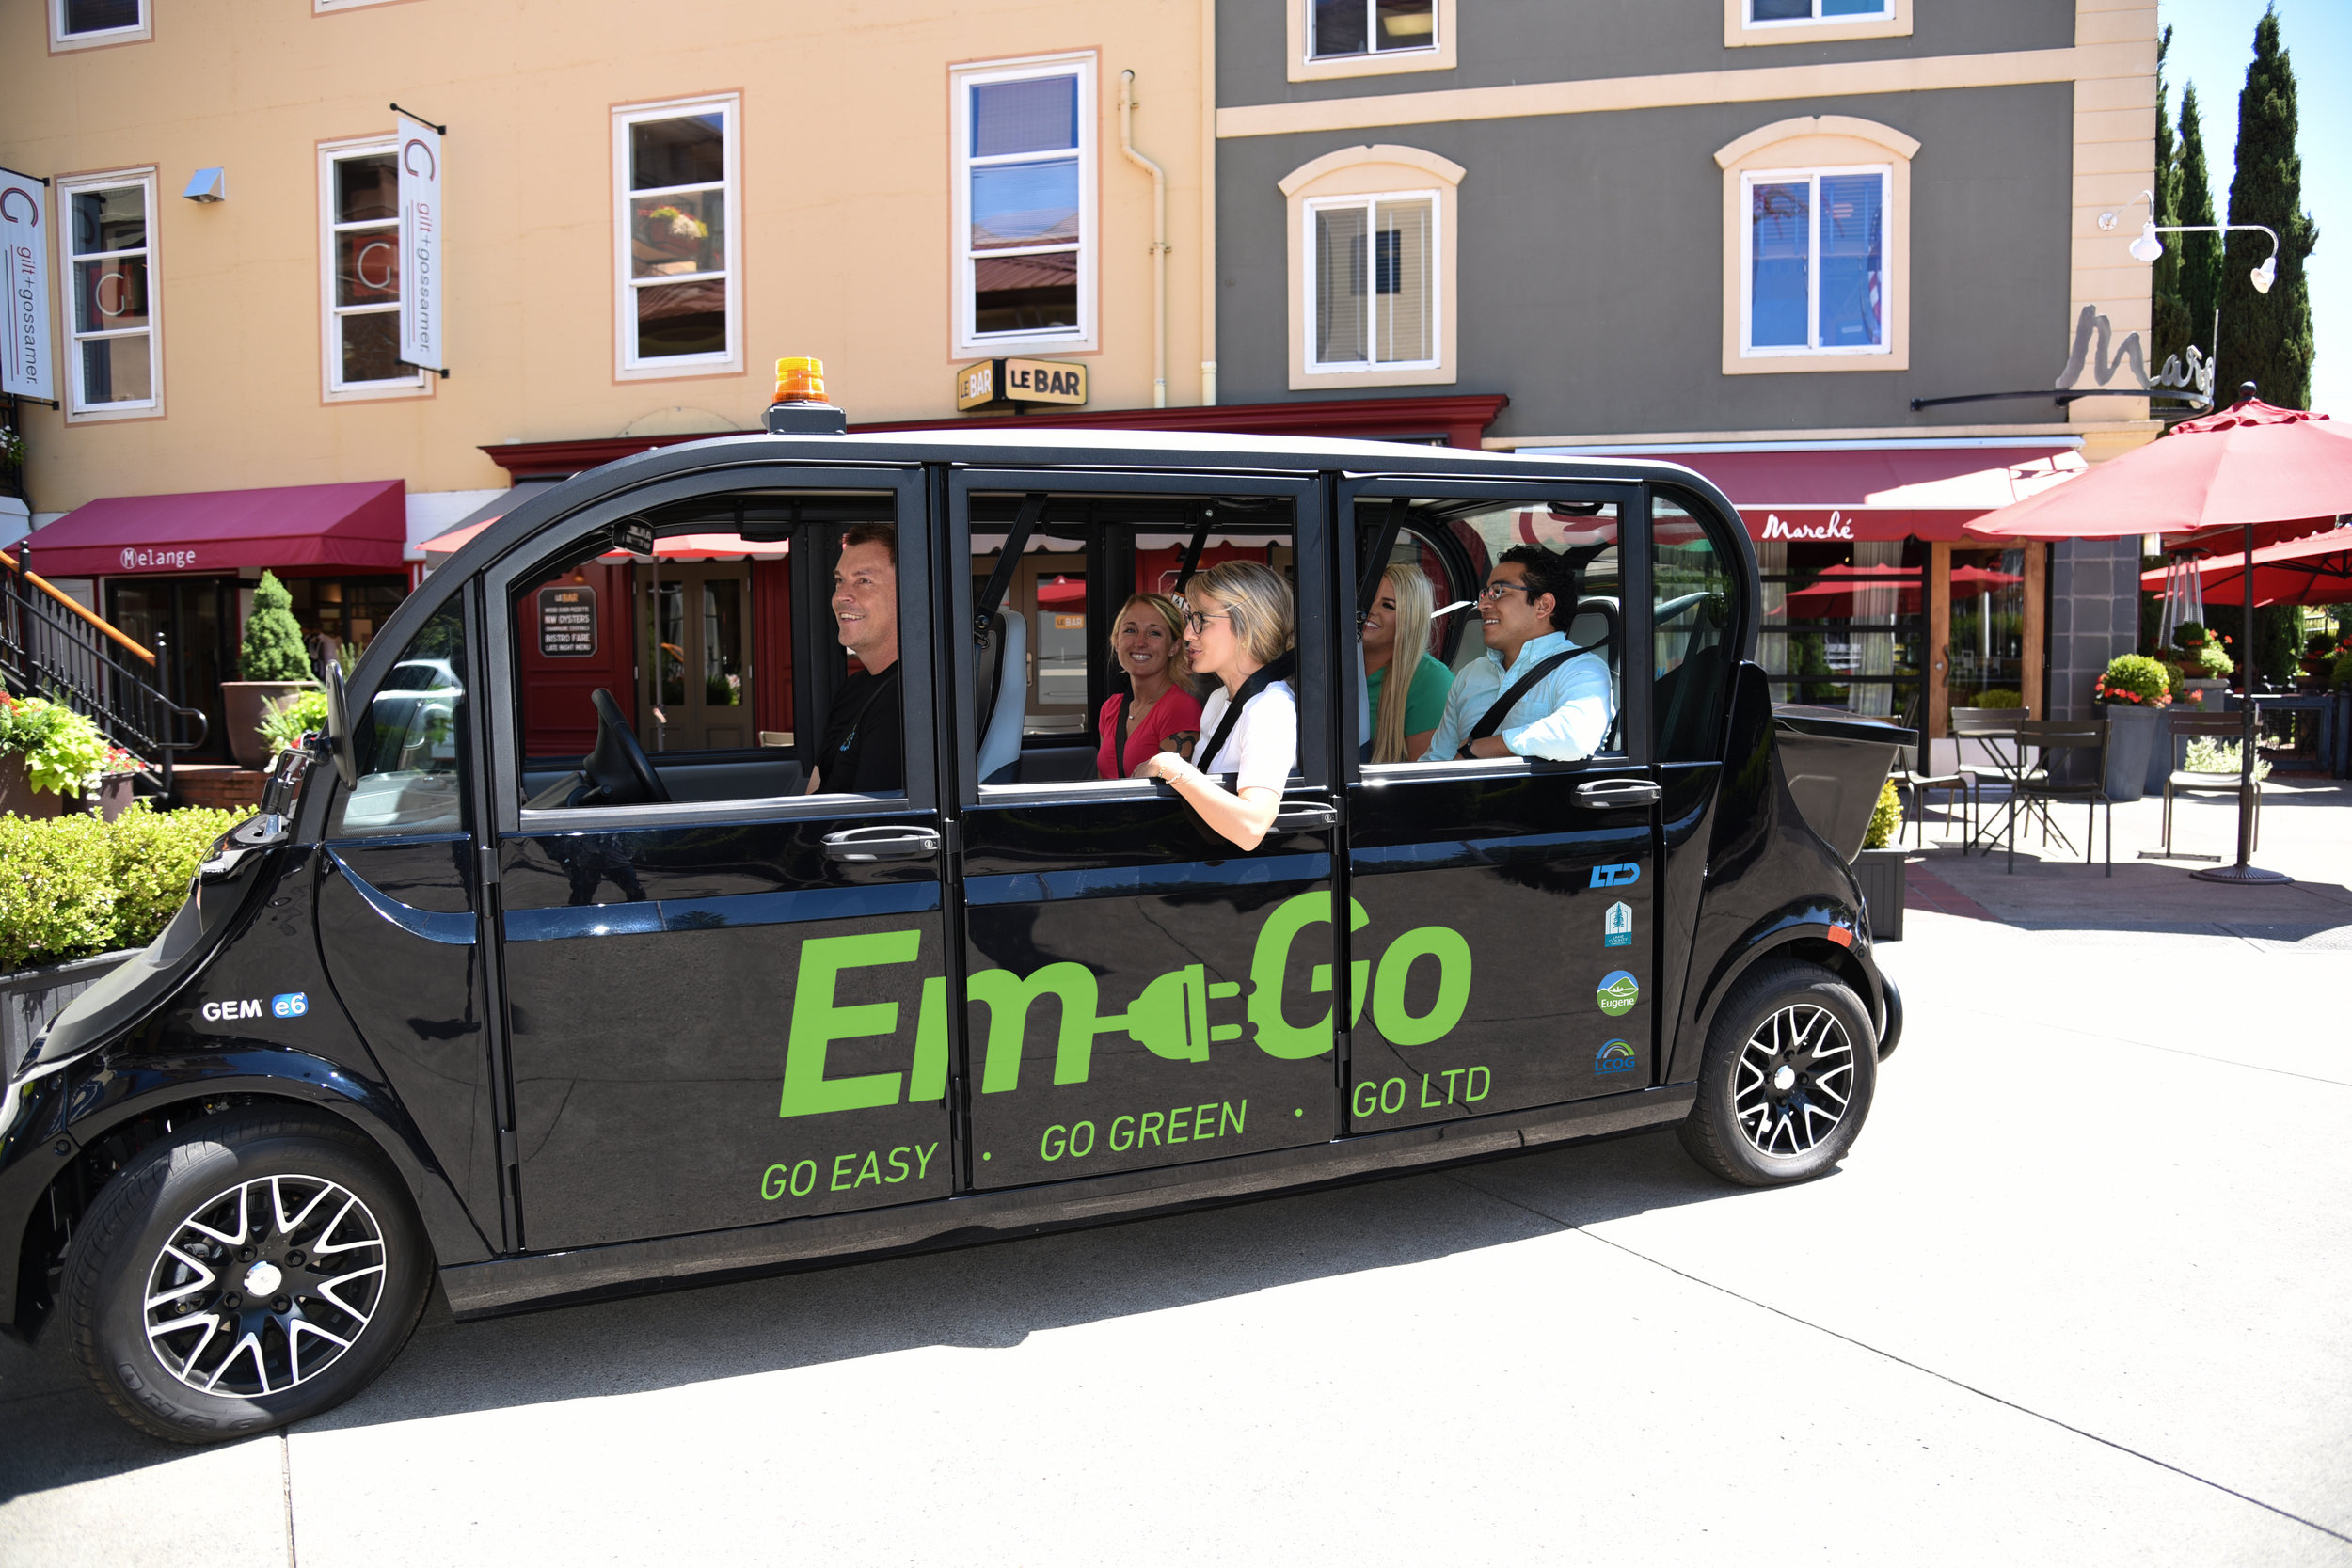 Hop on the electric EmGo shuttle for FEST rides! - The new EmGo shuttle will be transporting fest guests to and from the surrounding lots to Market Fest! Hop on when you see one and when you are ready to leave, you can catch the shuttle in front of Marché. EmGo will be available Friday, August 23rd between 5:00-9:00pm and Saturday, August 24th between 5:00 - 9:00pm.